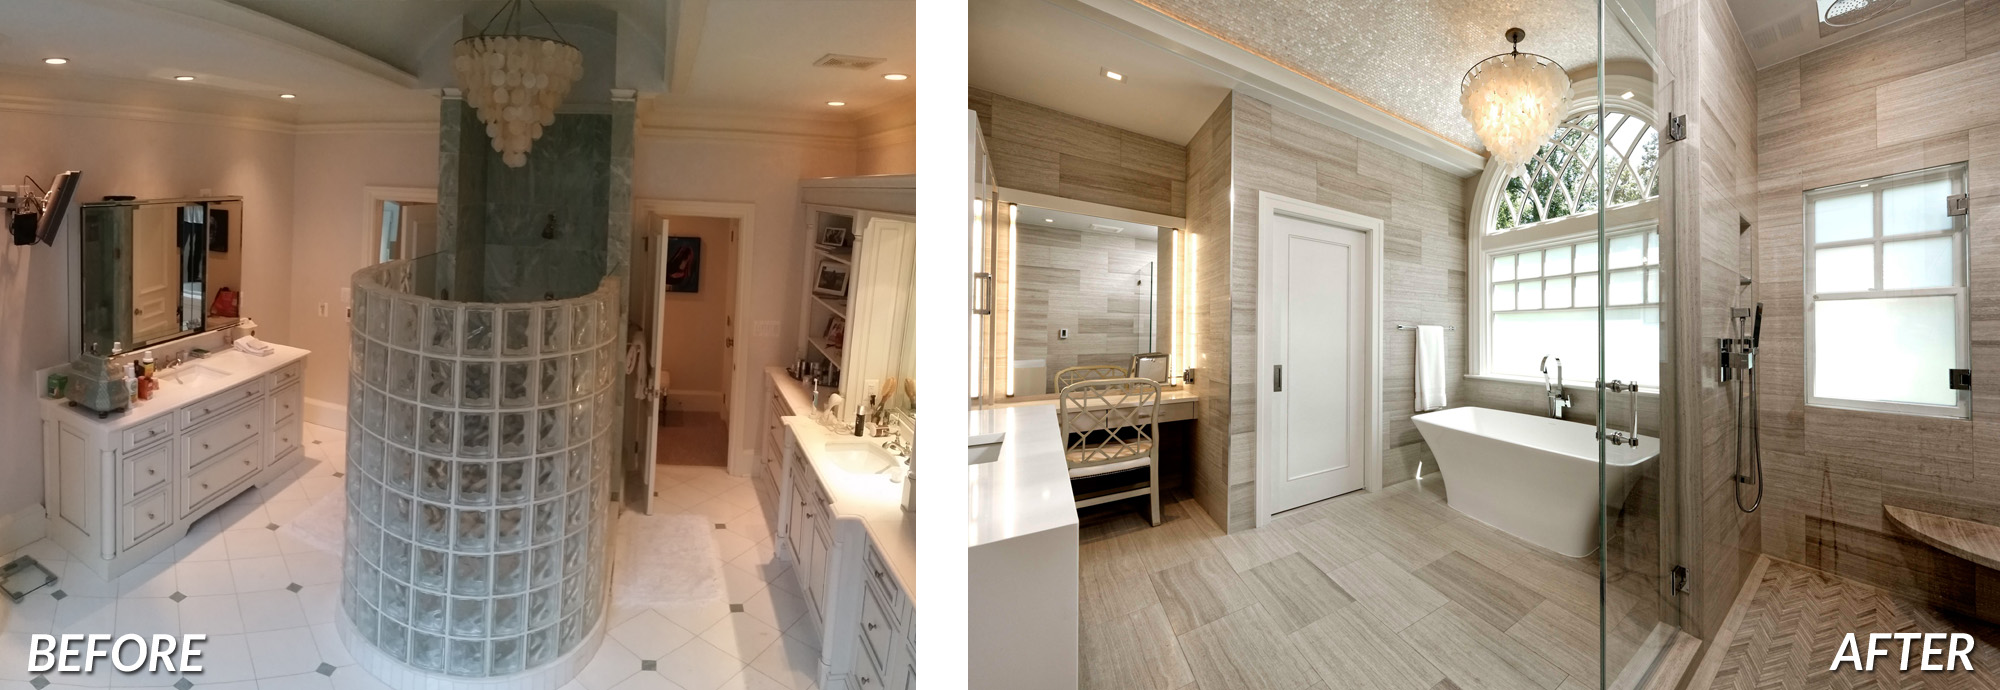 BOWA Design Design Build - McLean Bathroom Renovation Before & After